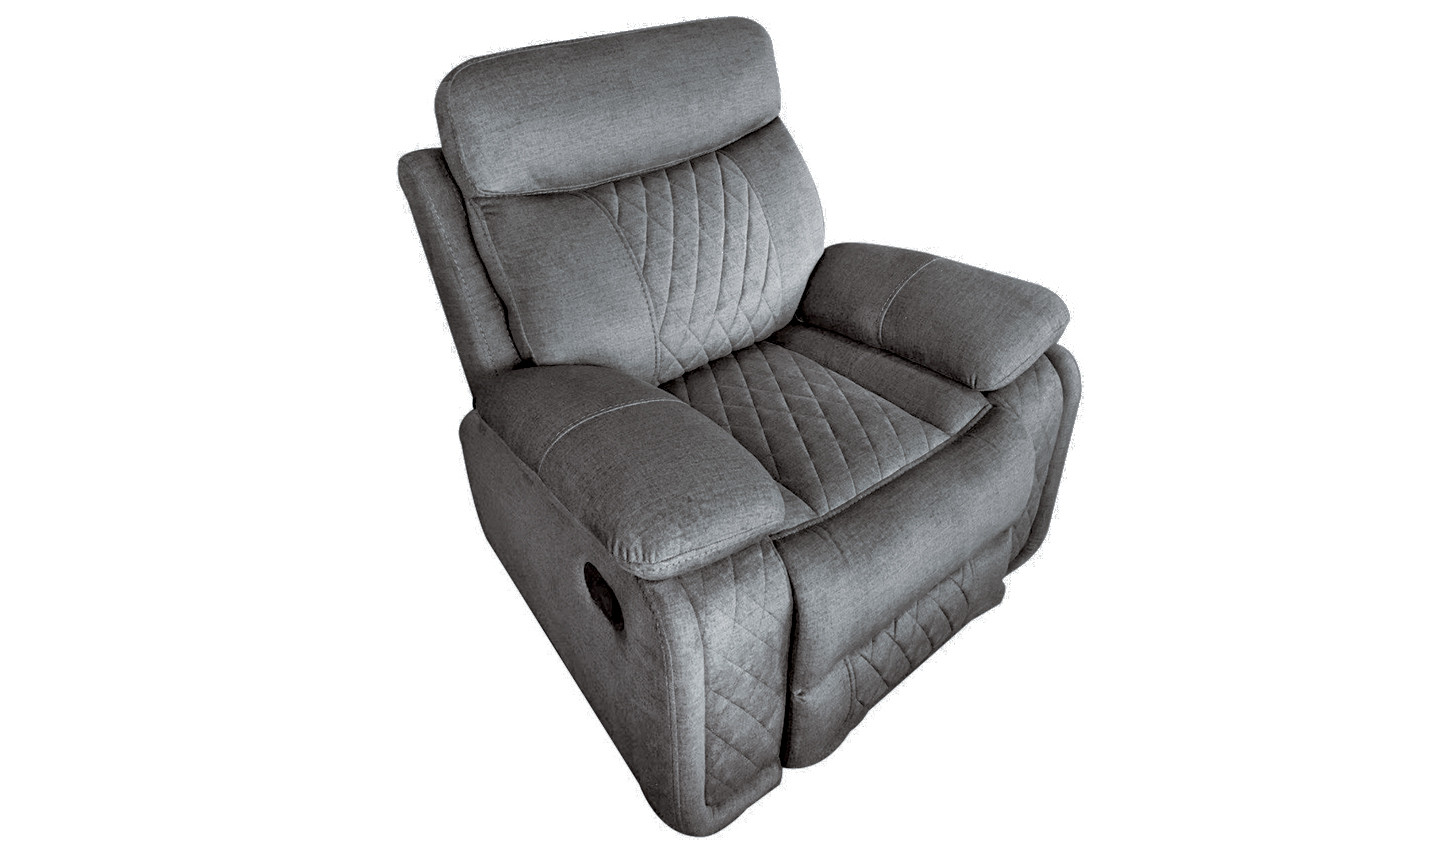 Eason 1 Seater Rec - Grey.jpg